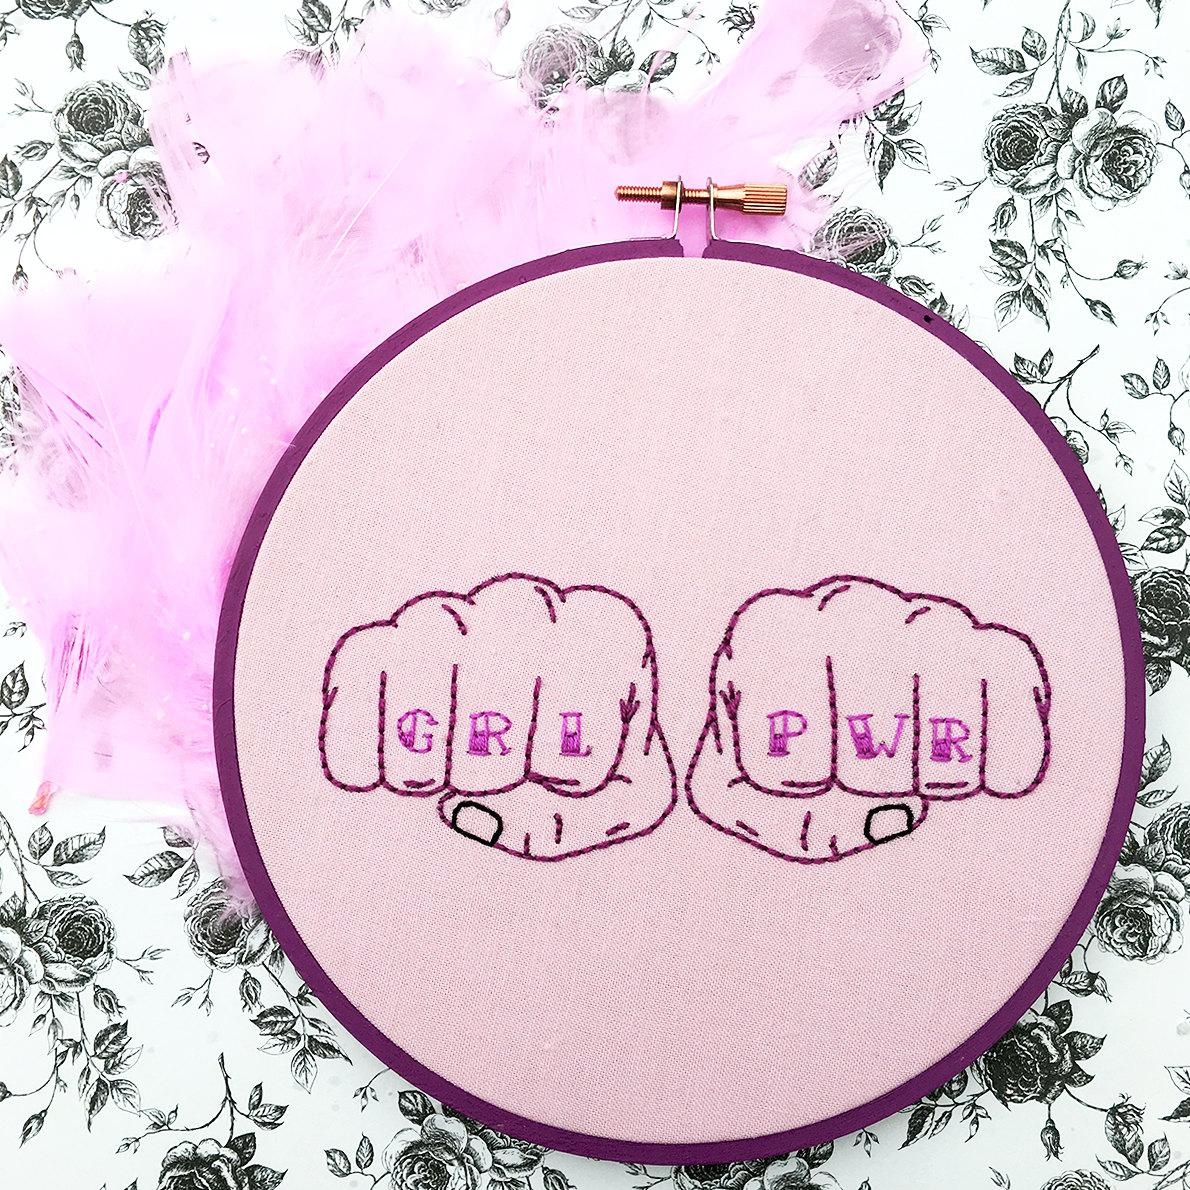 Grl Pwr Pink Hand Embroidery Feminist Wall Art Feminist Throughout Feminist Wall Art (View 15 of 20)